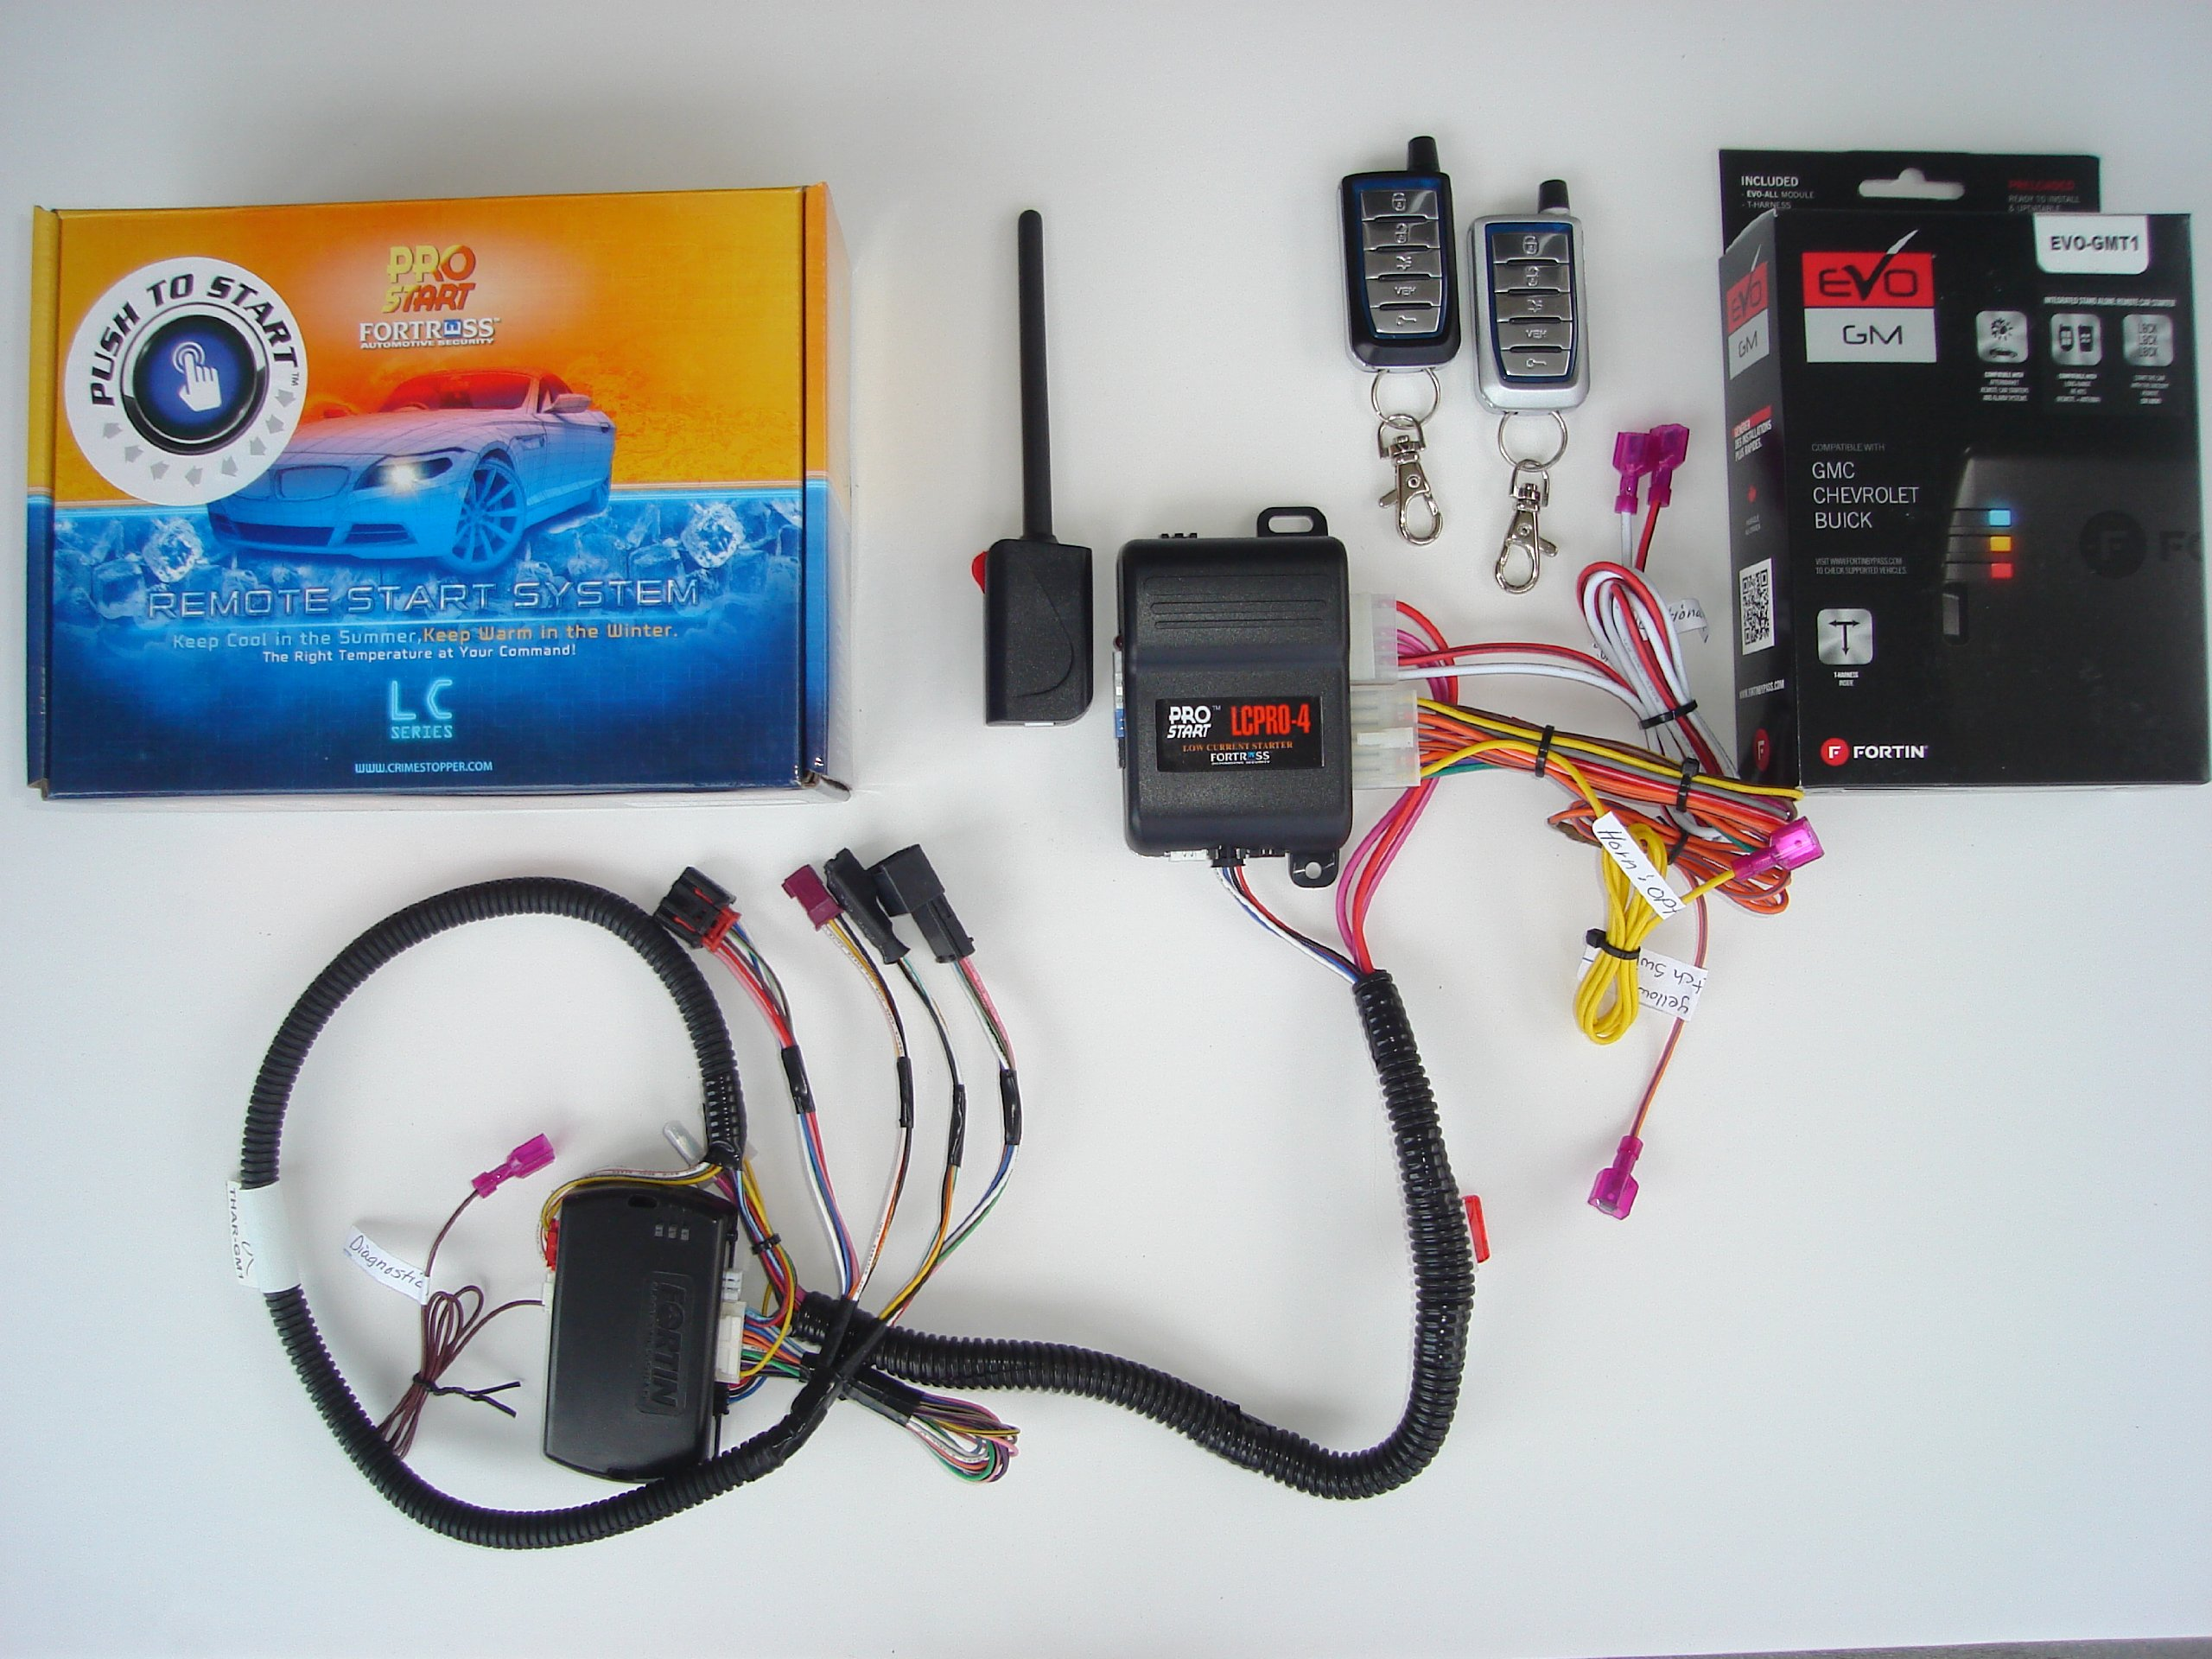 Remote Starter Kit w/ Keyless Entry for Chevrolet Camaro - True Plug & Play Installation